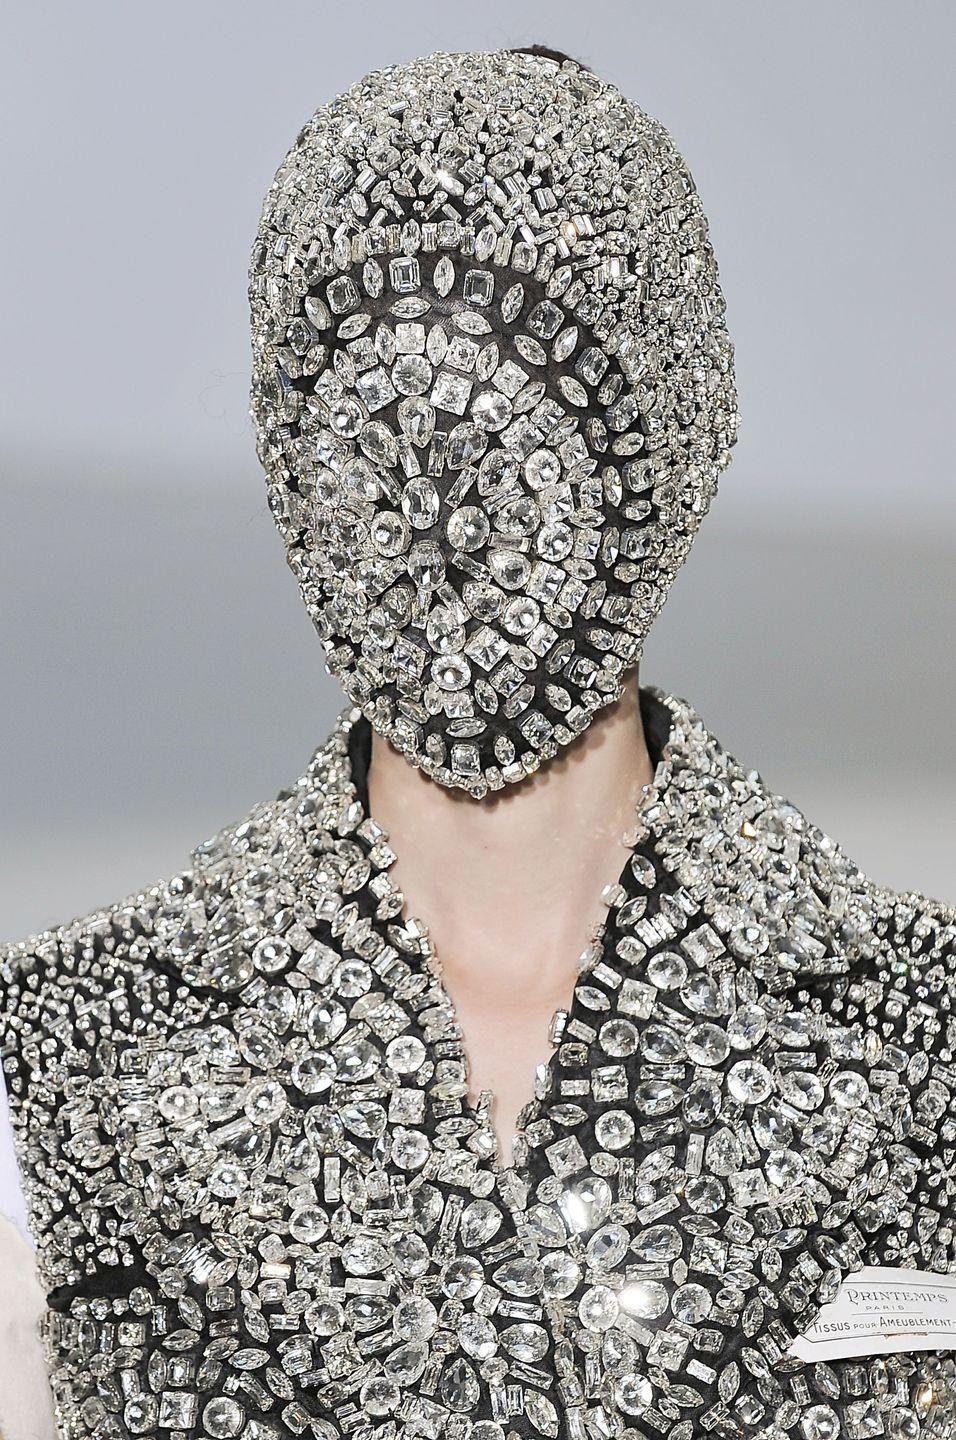 <p>These Haute Couture crystal masks quickly became an editorial hit, with fans including Kanye West, who wore them throughout his Yeezus tour in 2013.</p>